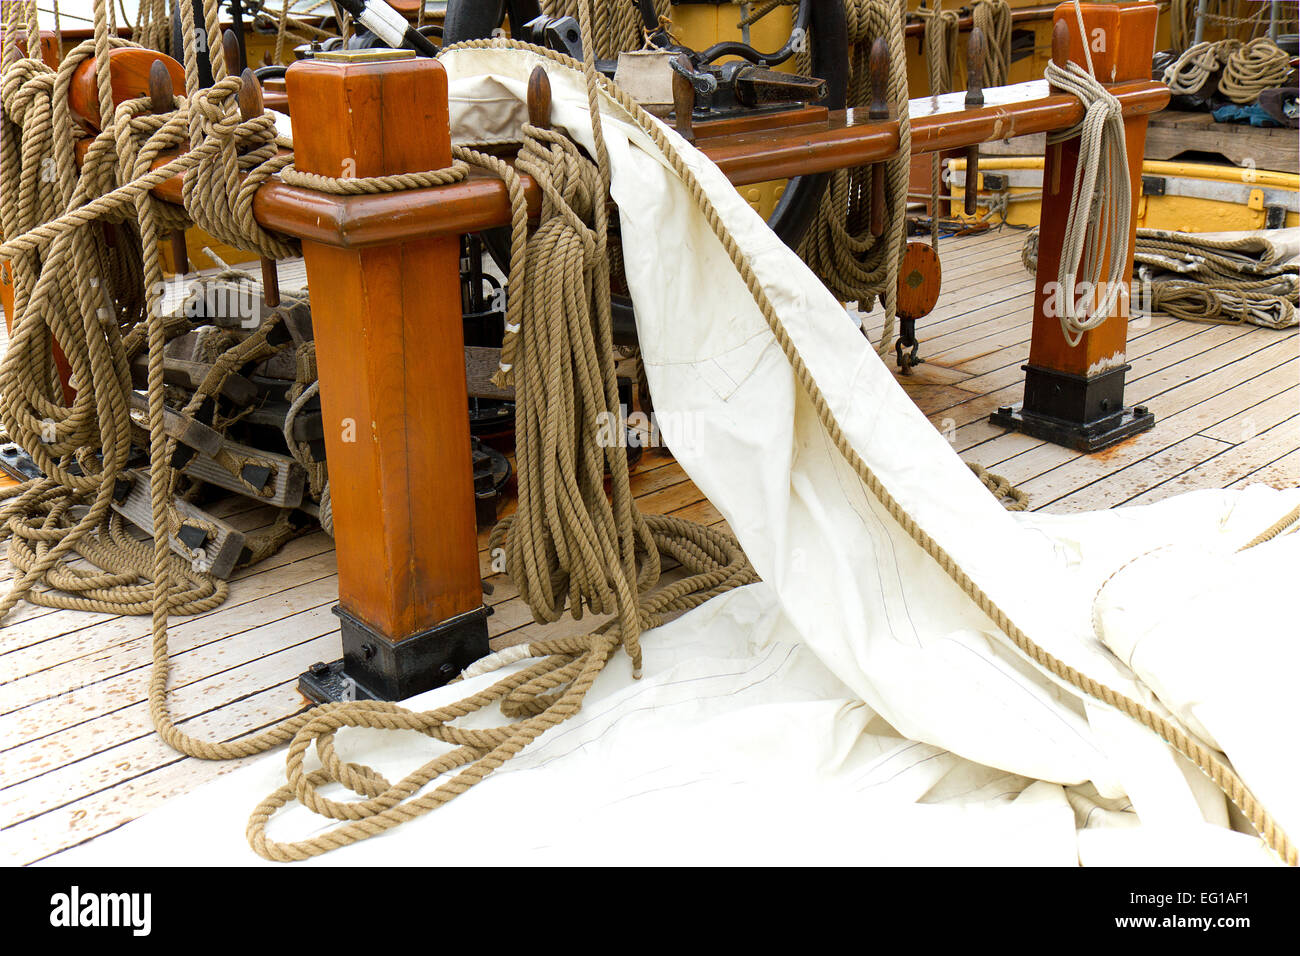 Deck of old sailing ship with ropes and sail cloth - Stock Image